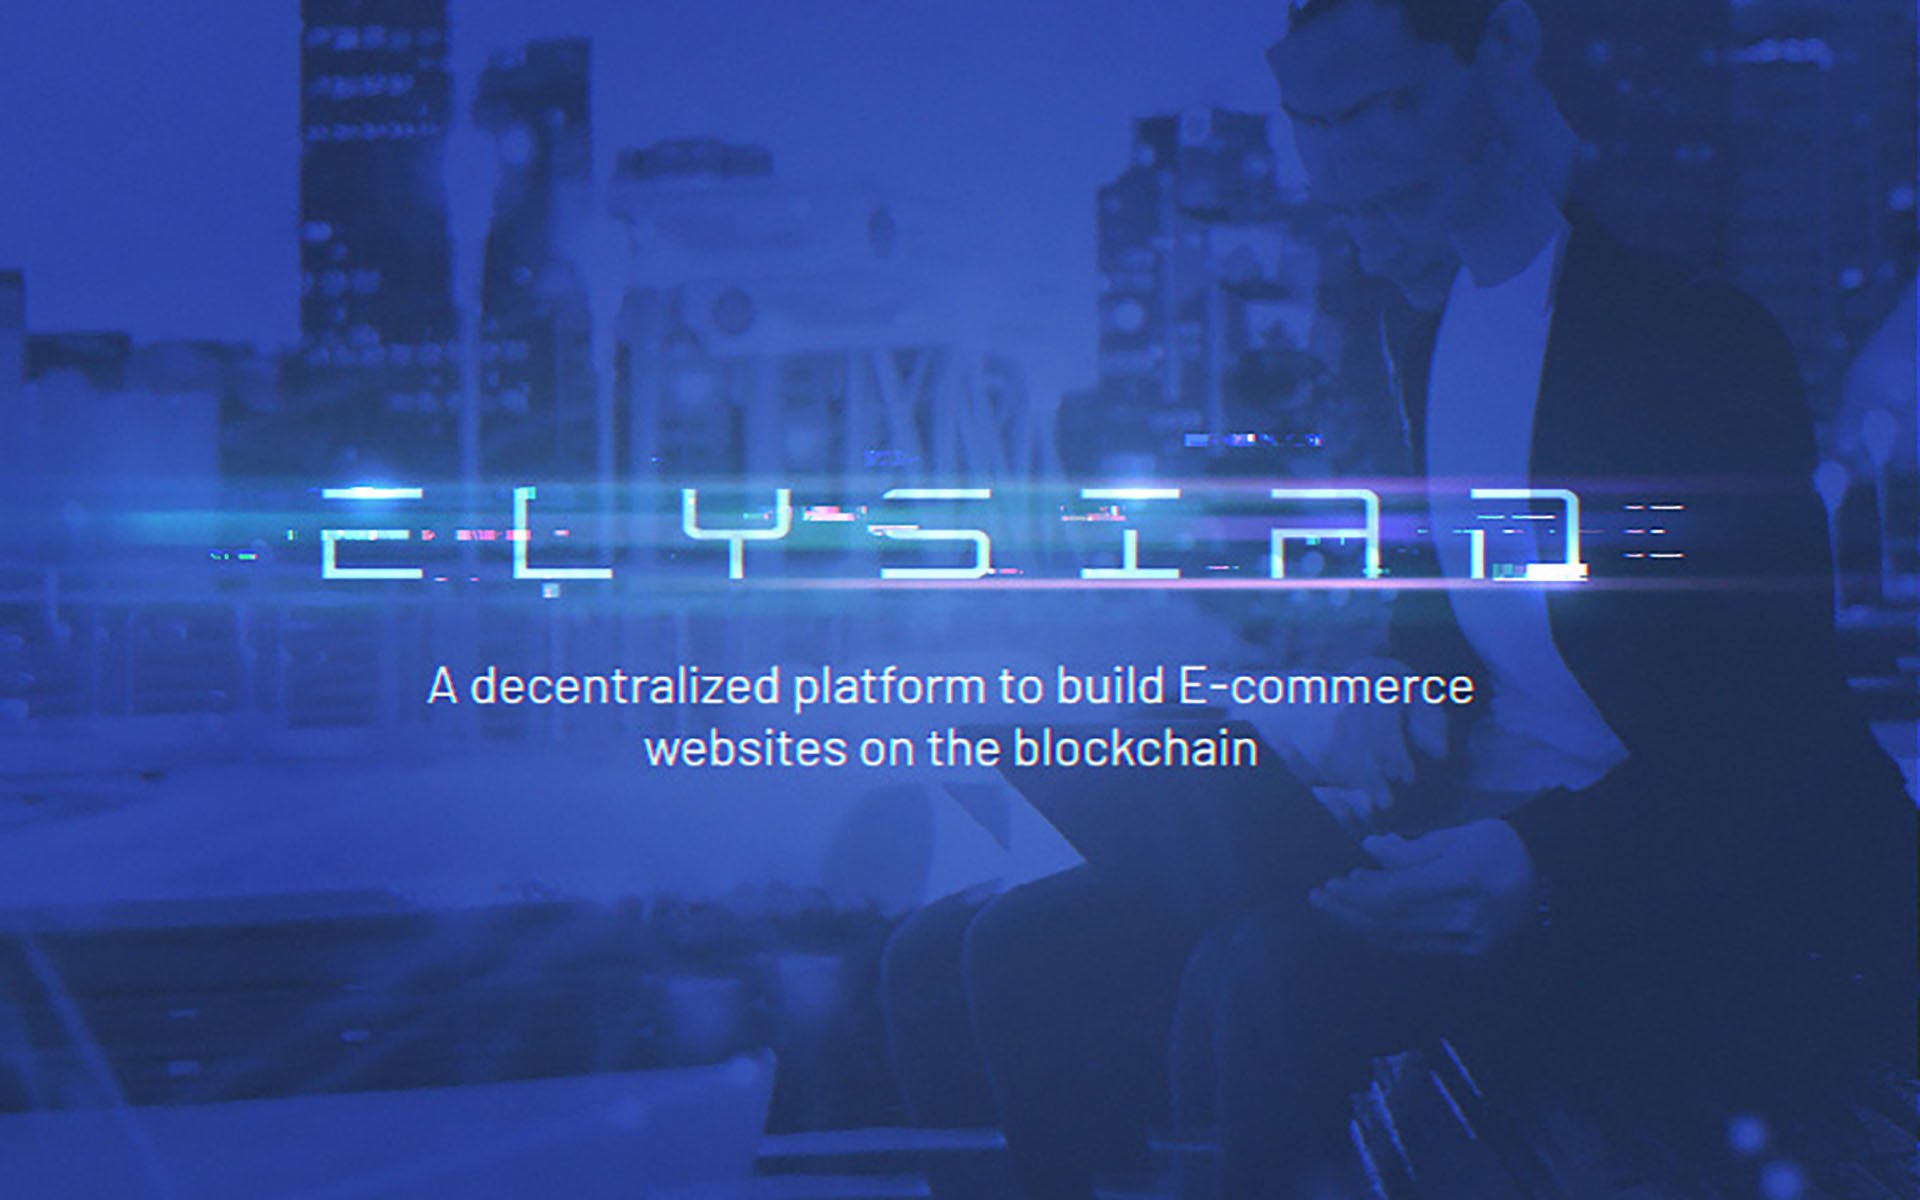 Blockchain Powered E-commerce Platform Elysian Looks to Build Trust between Businesses and Consumers by Redefining Security and Efficiency